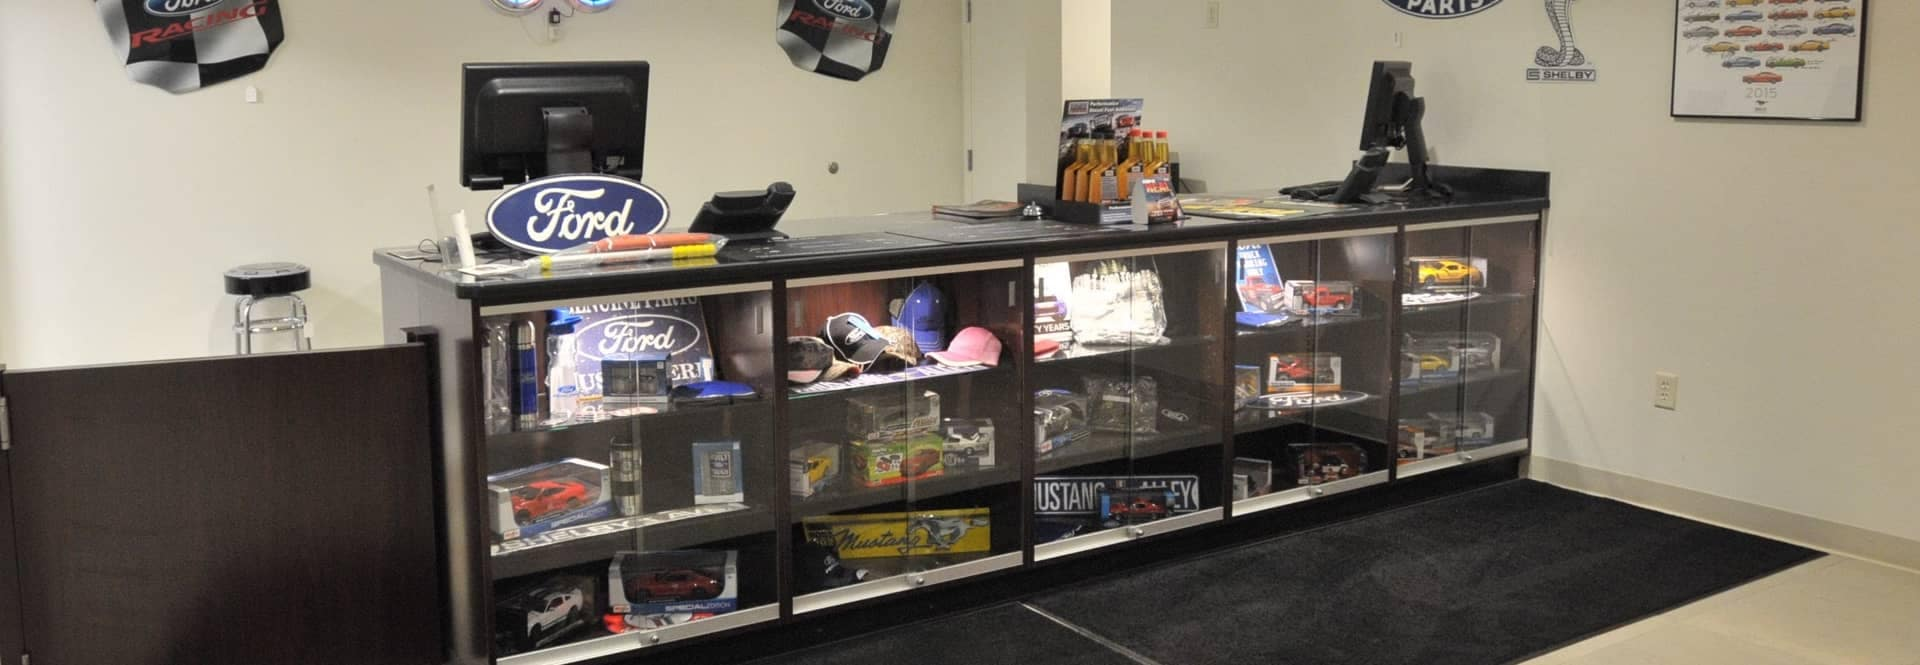 A display of Ford parts